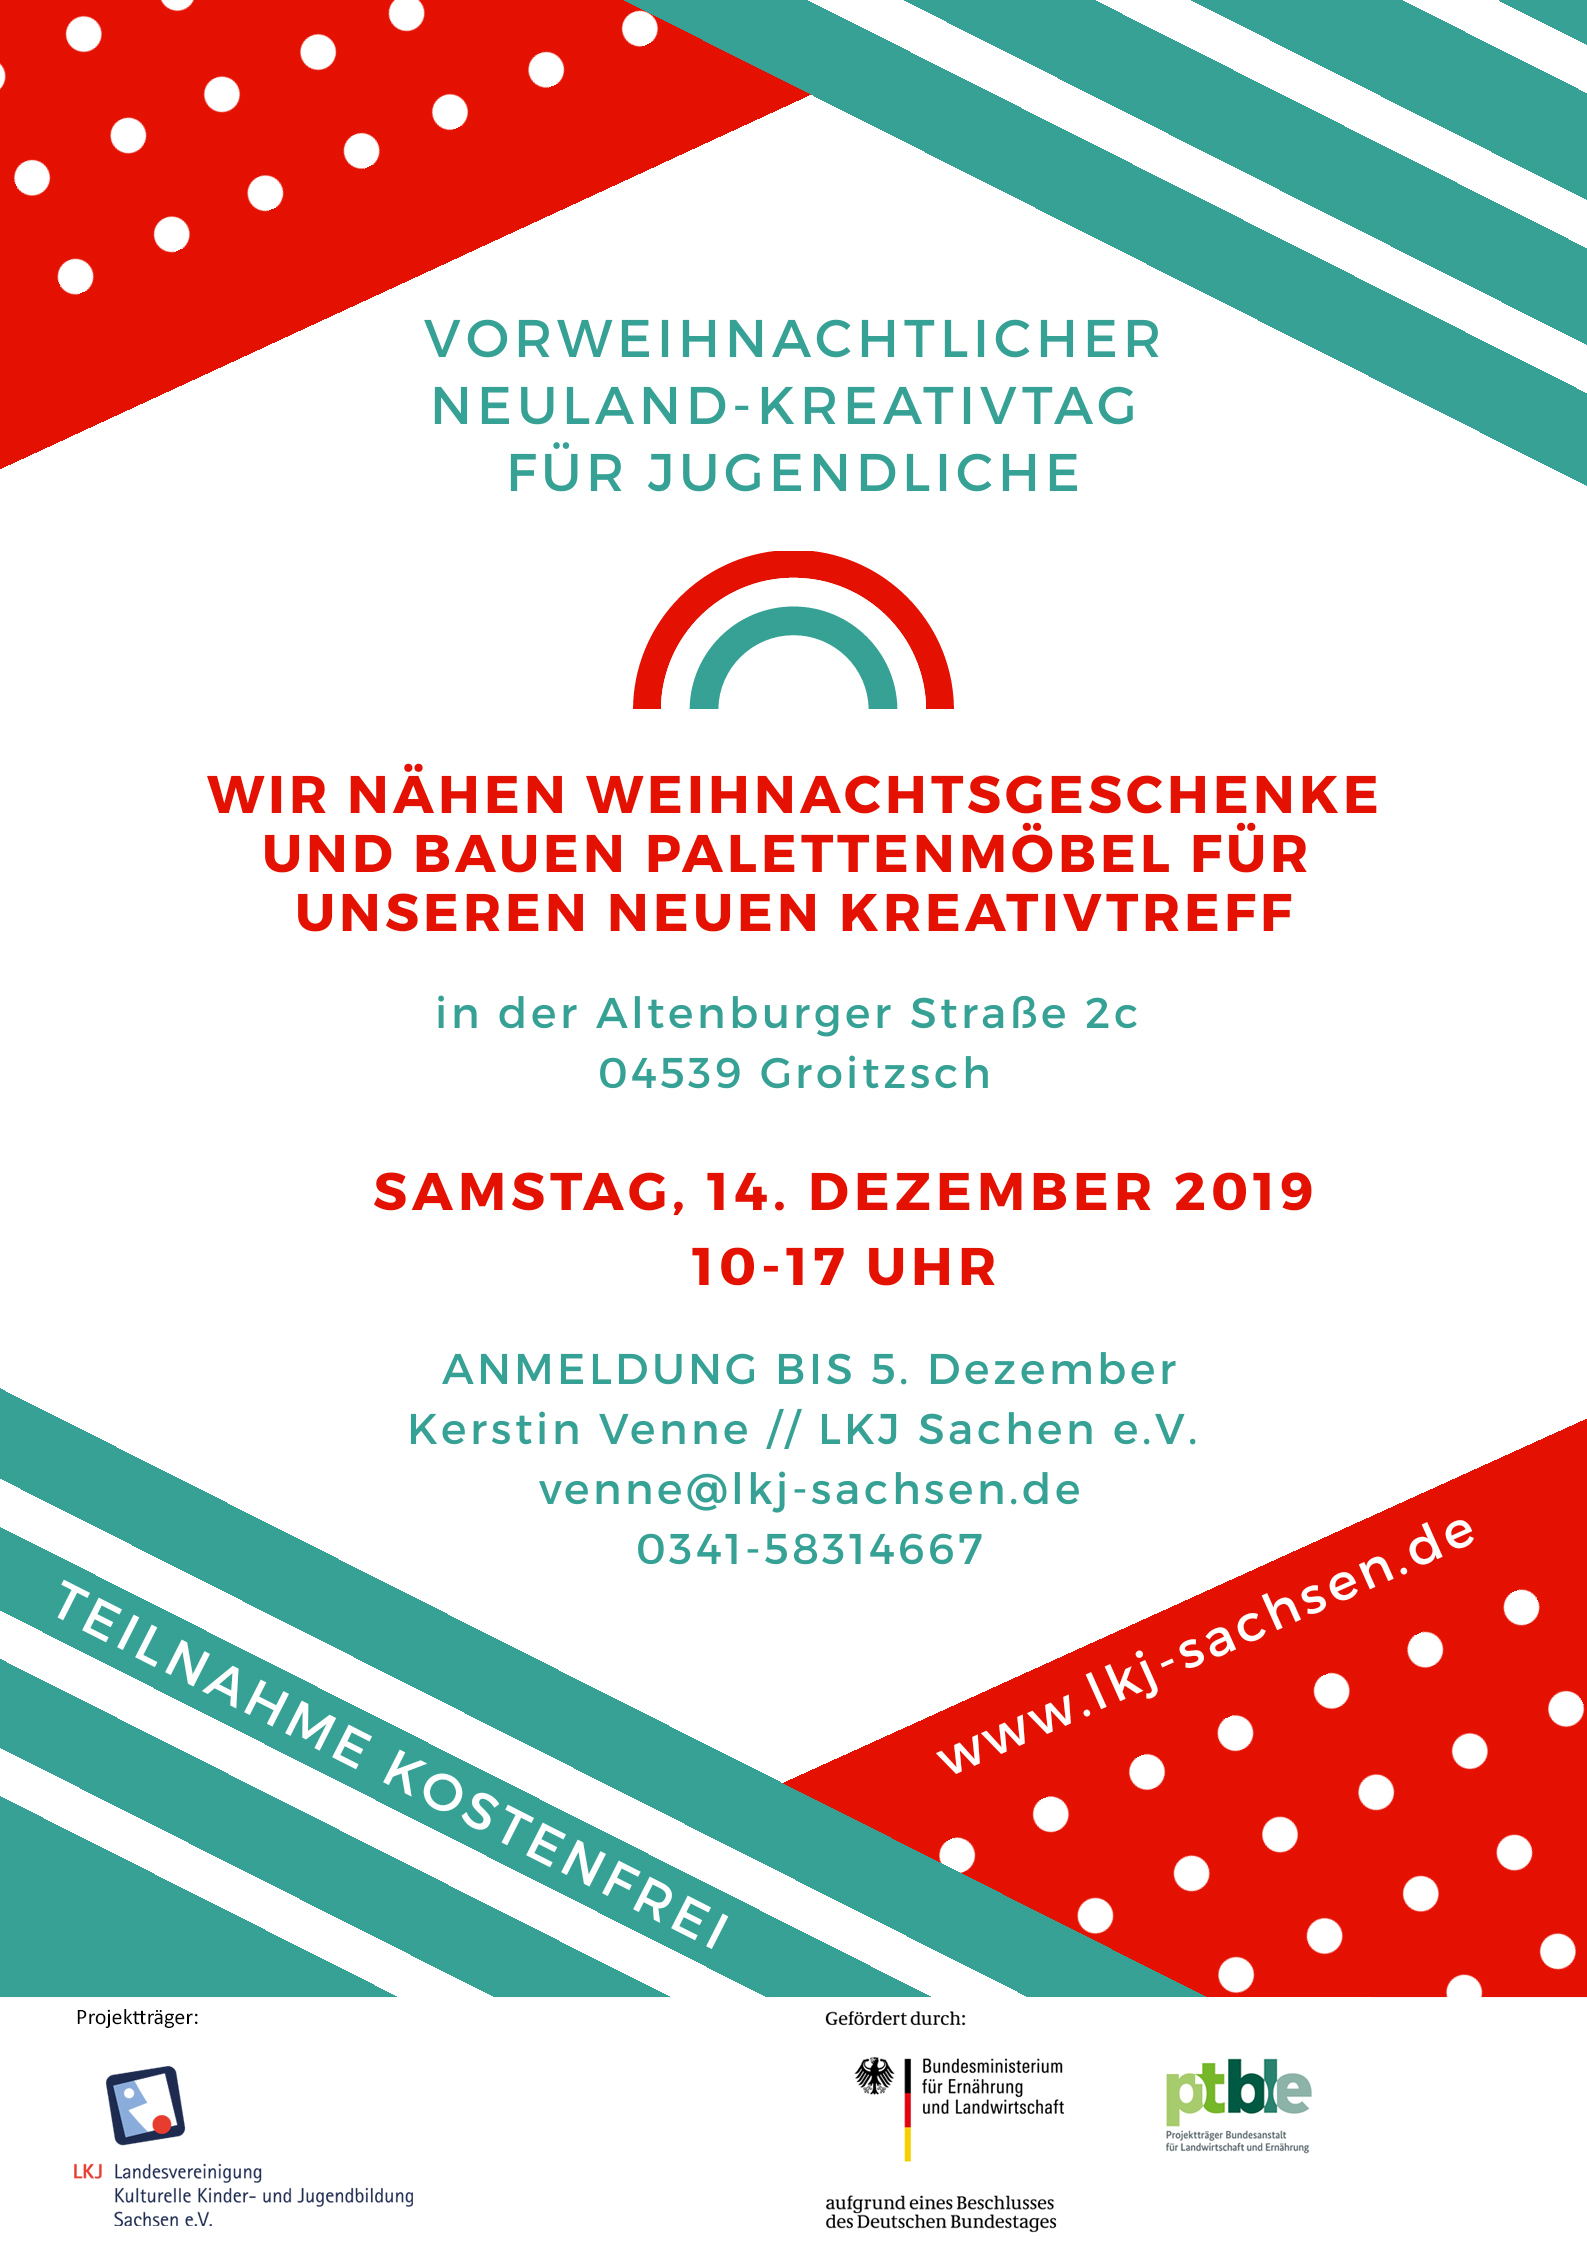 files/lkj/Neuland/Fotos/Allgemeine Fotos/Flyer_Kreativtreff_Groitzsch_Winter19.jpg